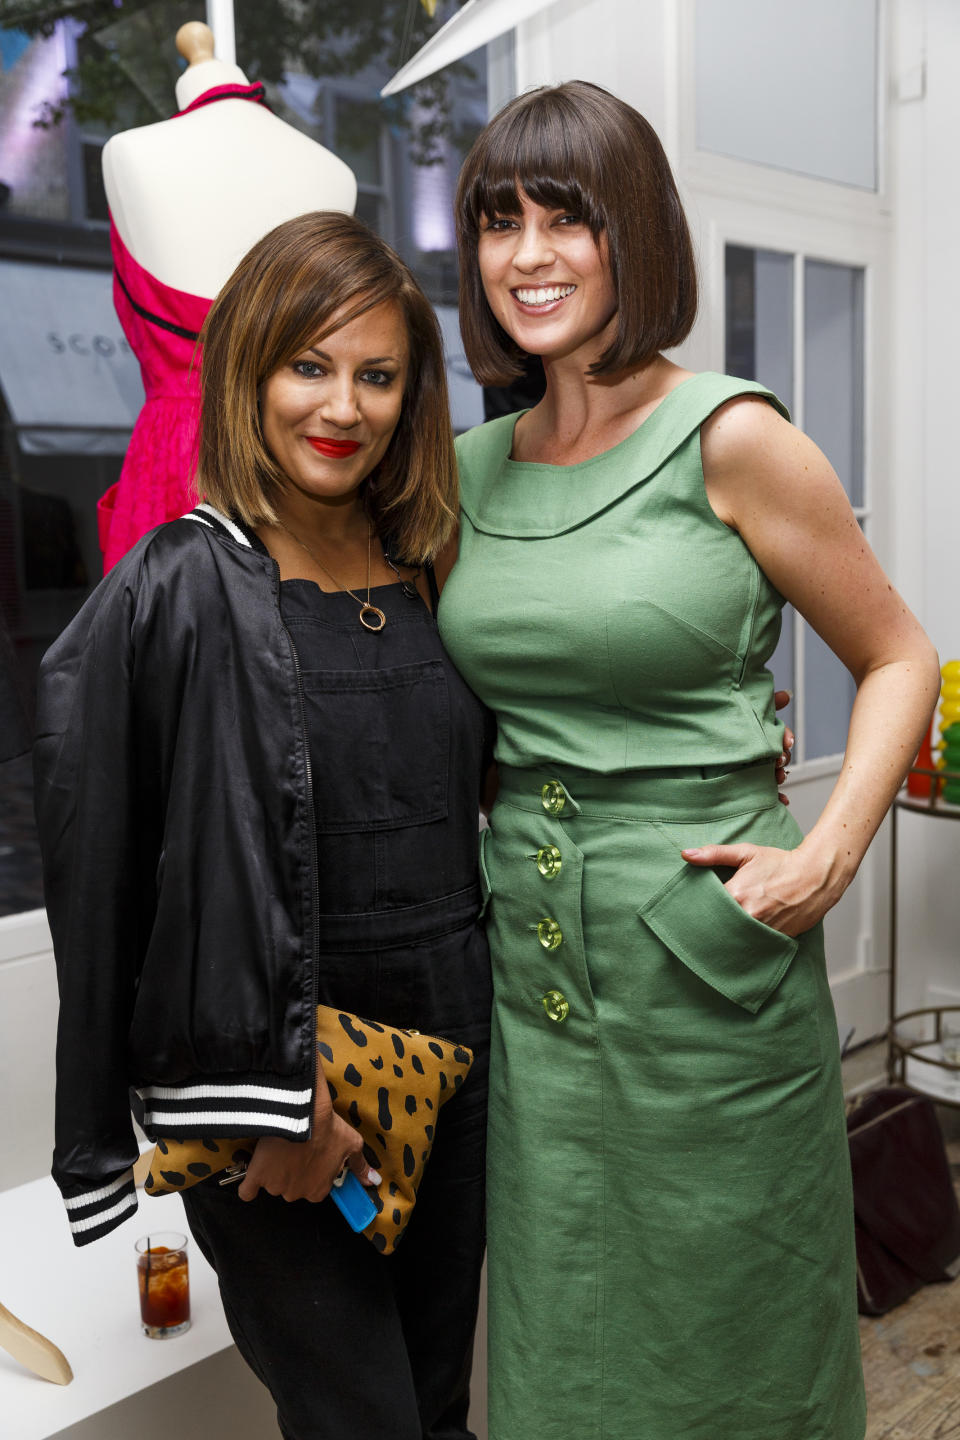 LONDON, ENGLAND - MAY 06:  Caroline Flack and Dawn O'Porter attend the launch of Dawn O'Porter's BOB pop up boutique at Seven Dials, with Caorunn Gin and anCnoc vinatage Whisky, Vidal Sassoon and  Smashbox on May 6, 2015 in London, England.  (Photo by Tristan Fewings/Getty Images for BOB By Dawn O'Porter)